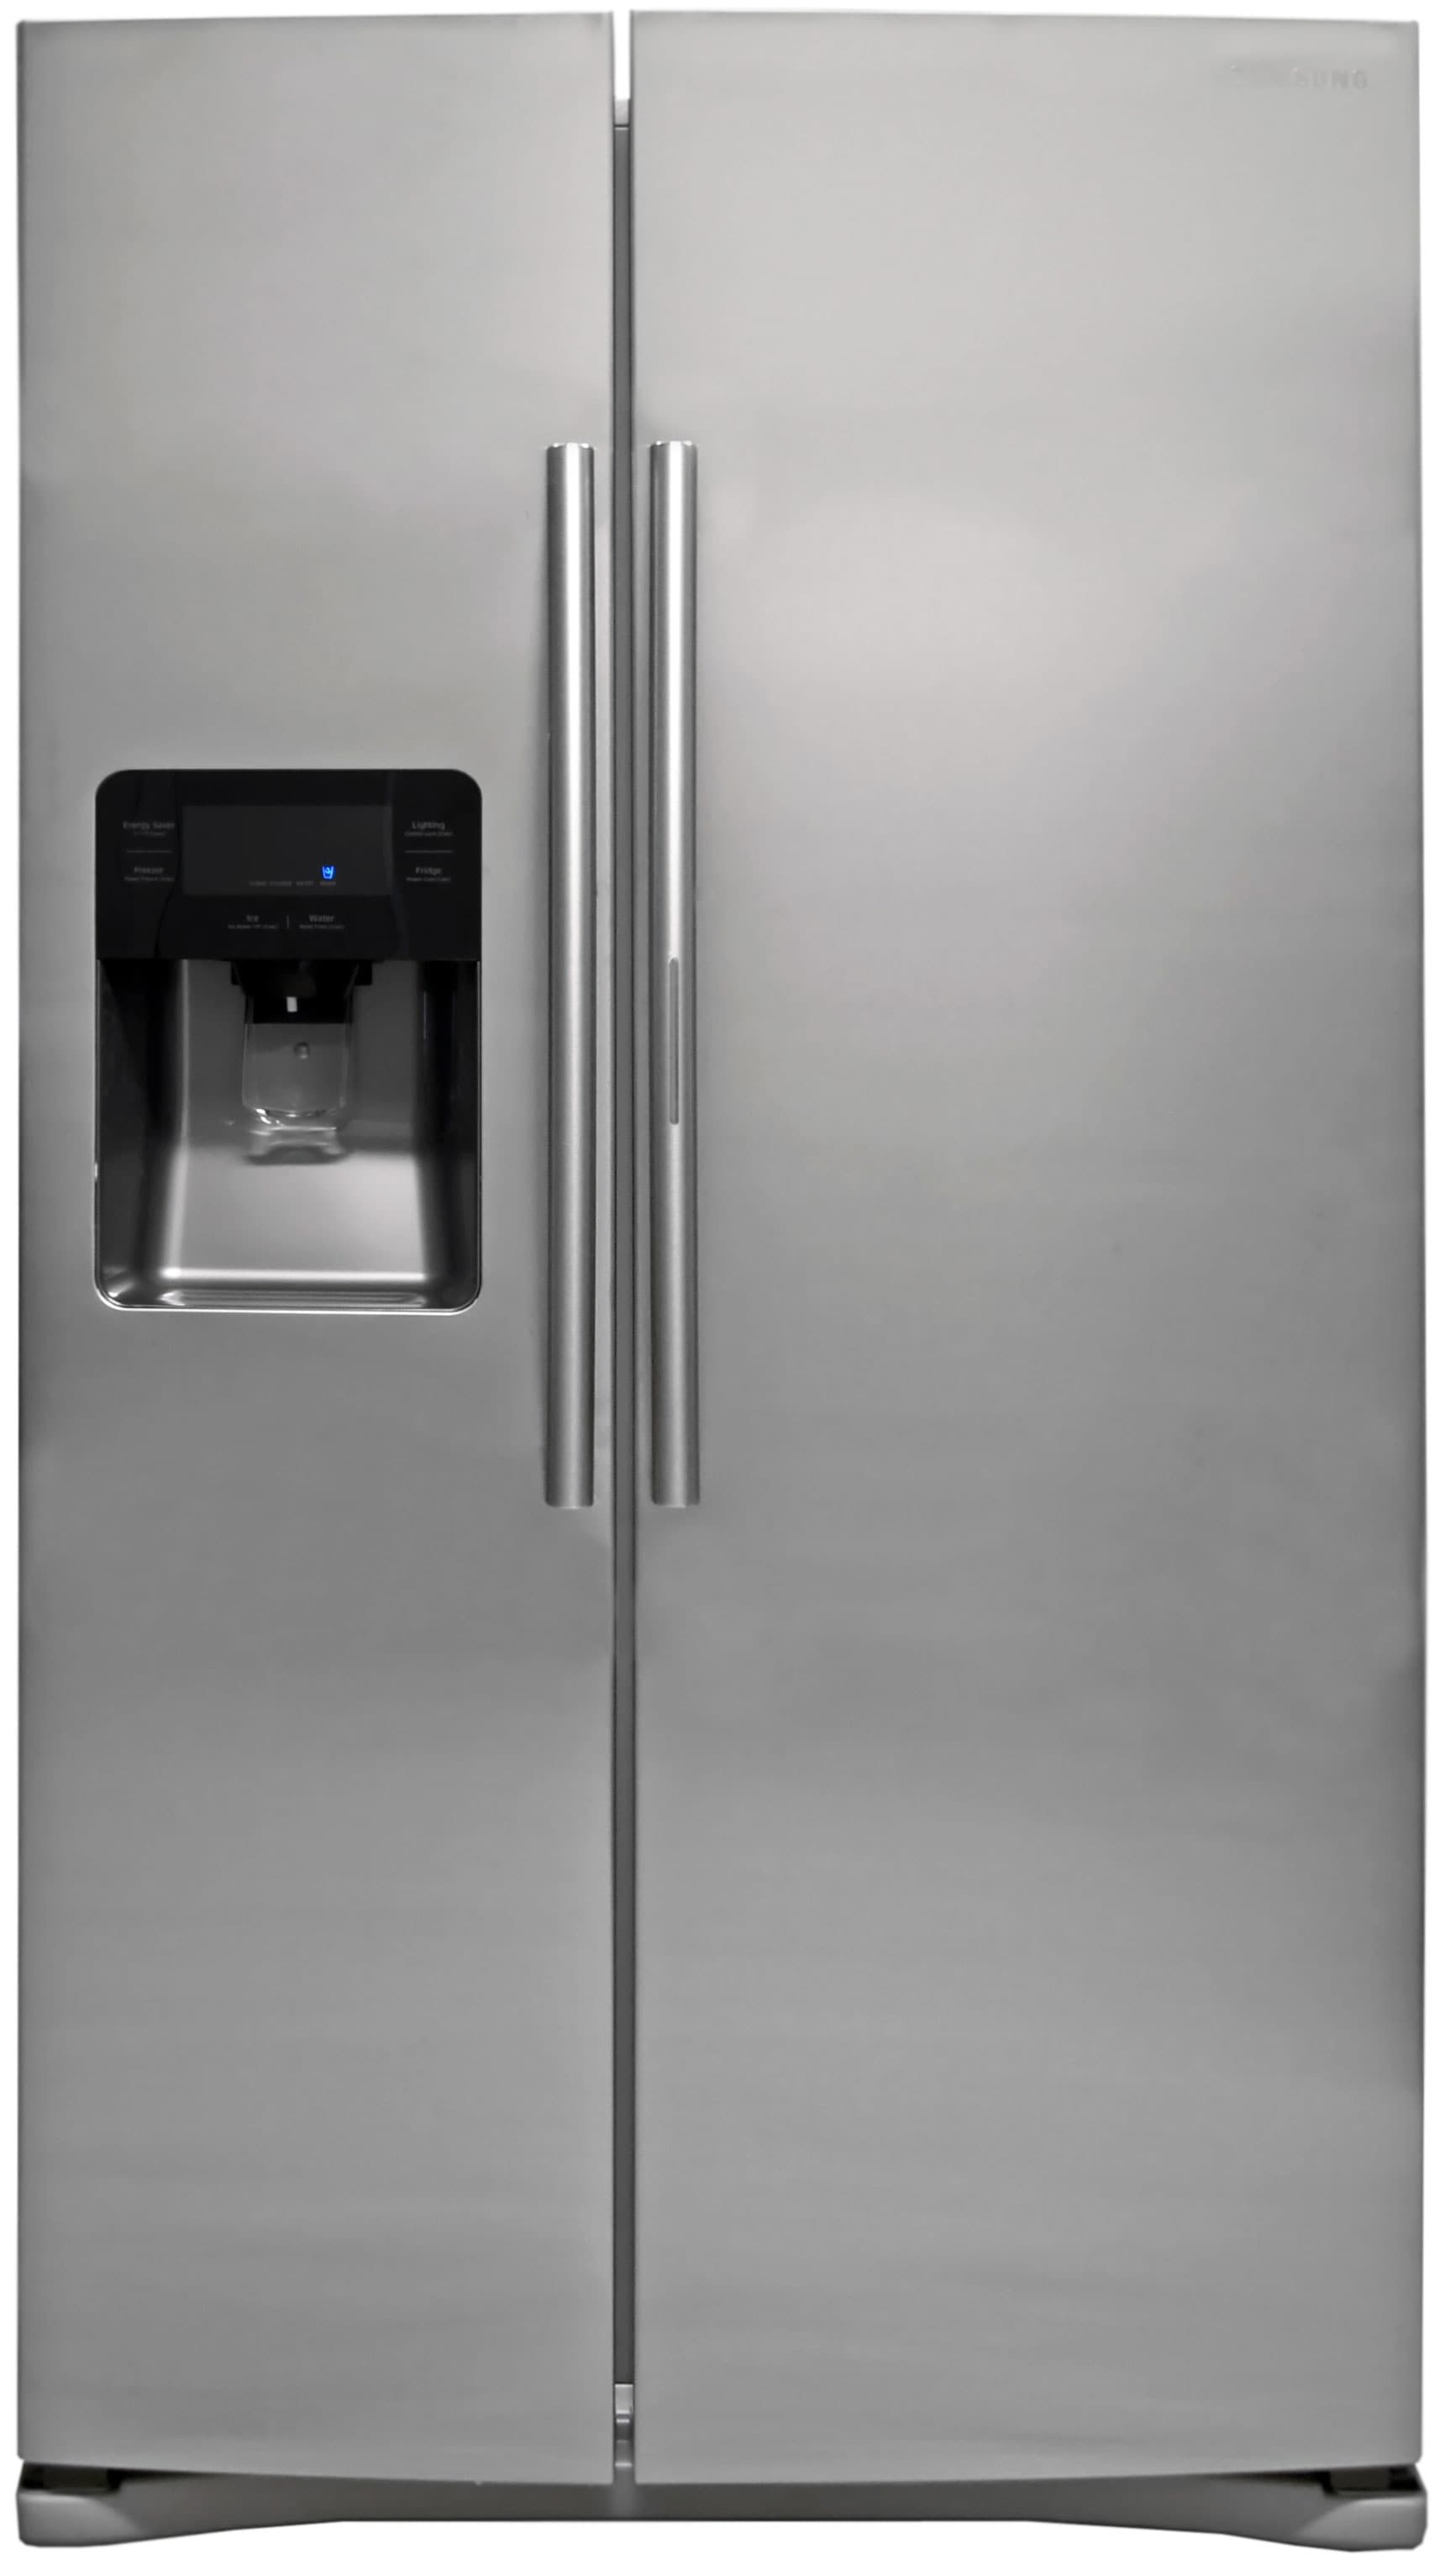 The Samsung RH25H5611SR is a straightforward side-by-side... with door-in-door storage!